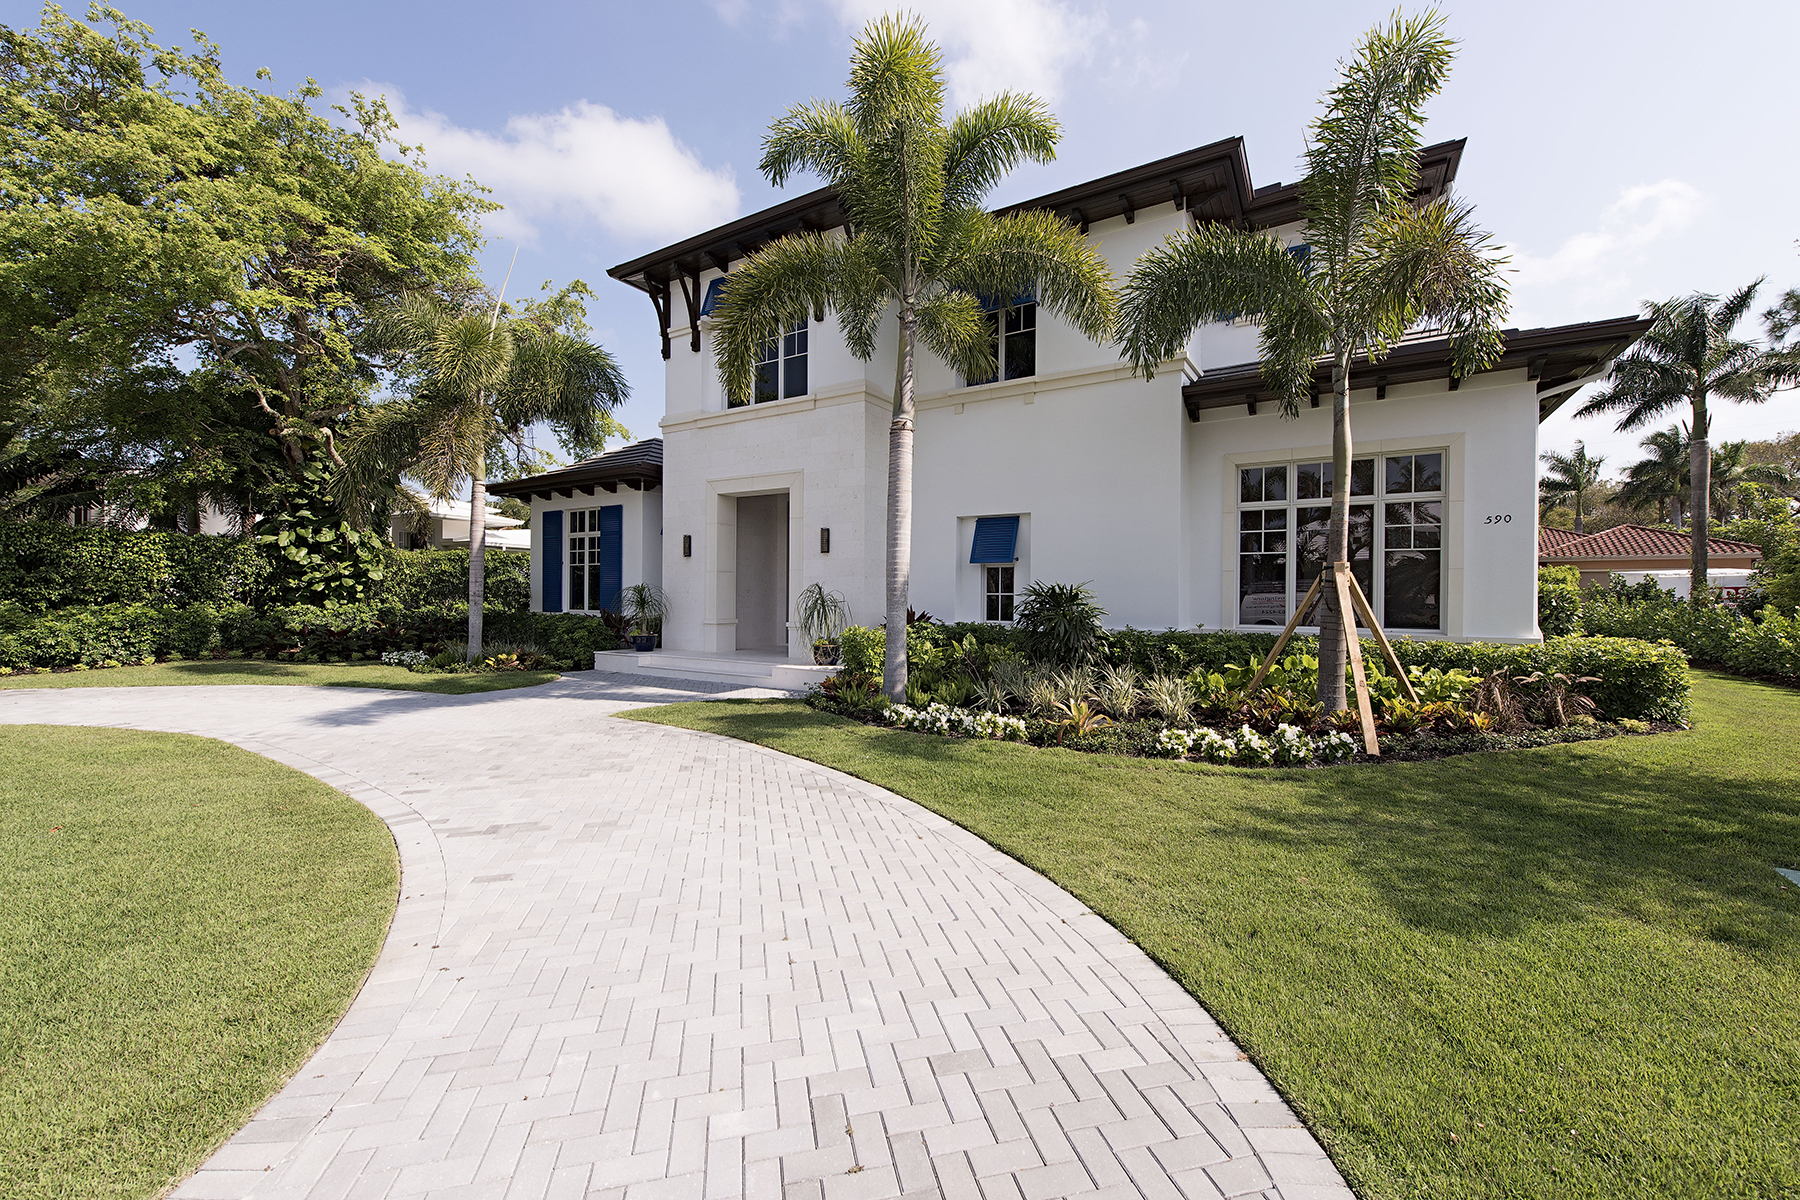 Single Family Home for Sale at Olde Naples 590 Palm Cir E Naples, Florida, 34102 United States